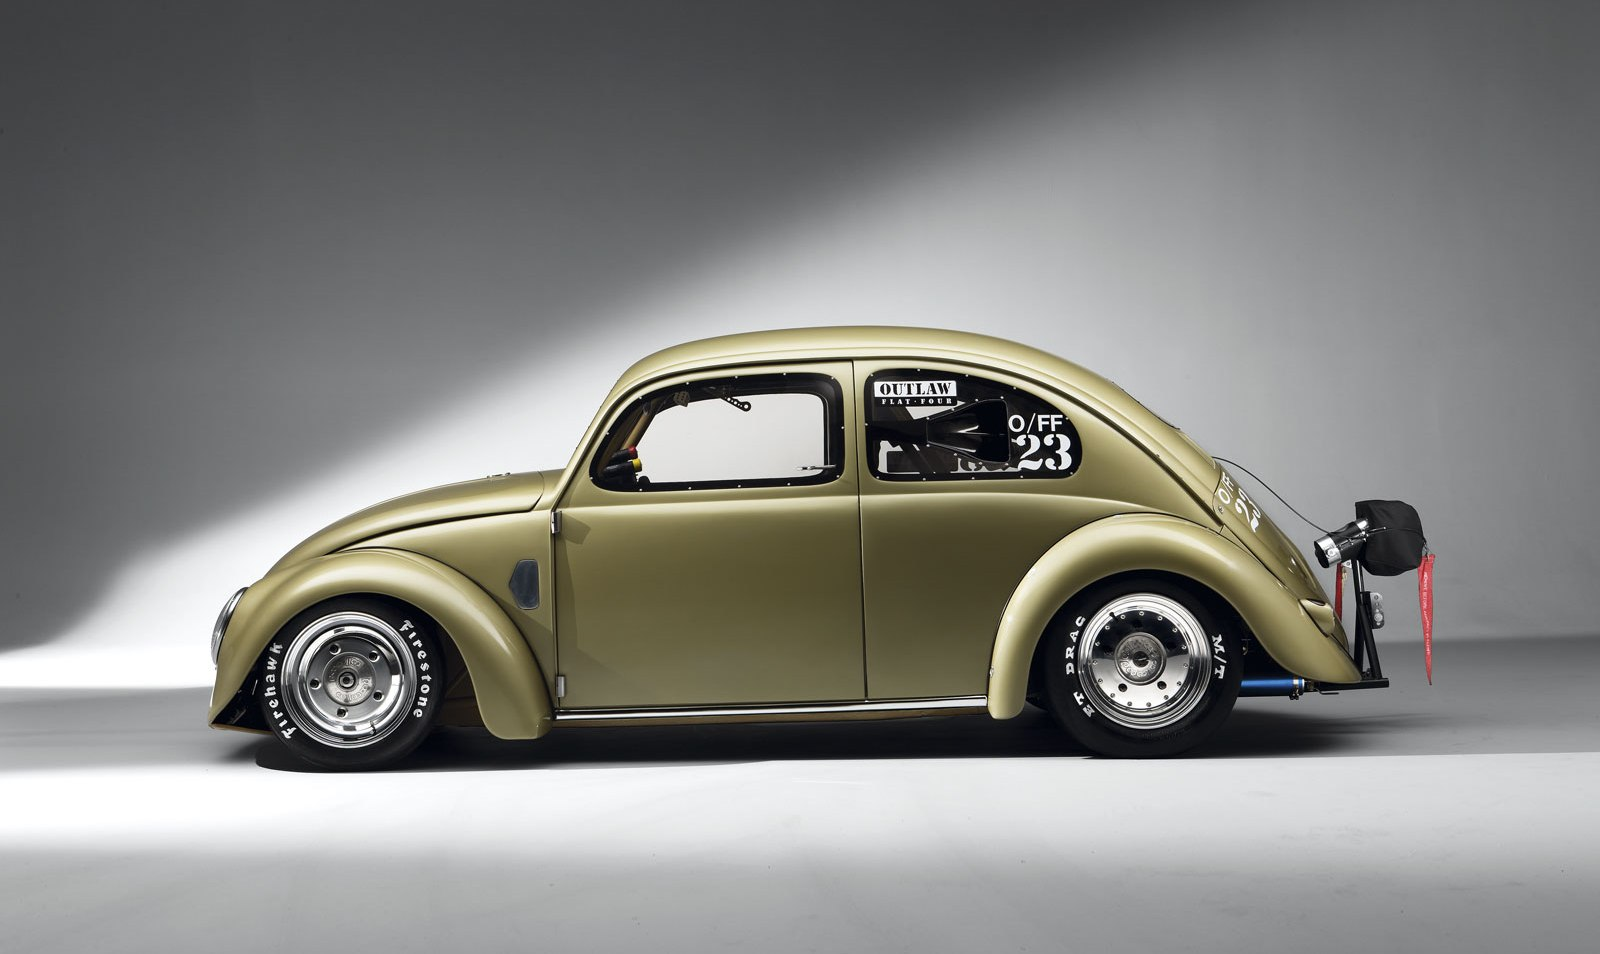 Volkswagen Beetle Wallpaper Wallpapersafari